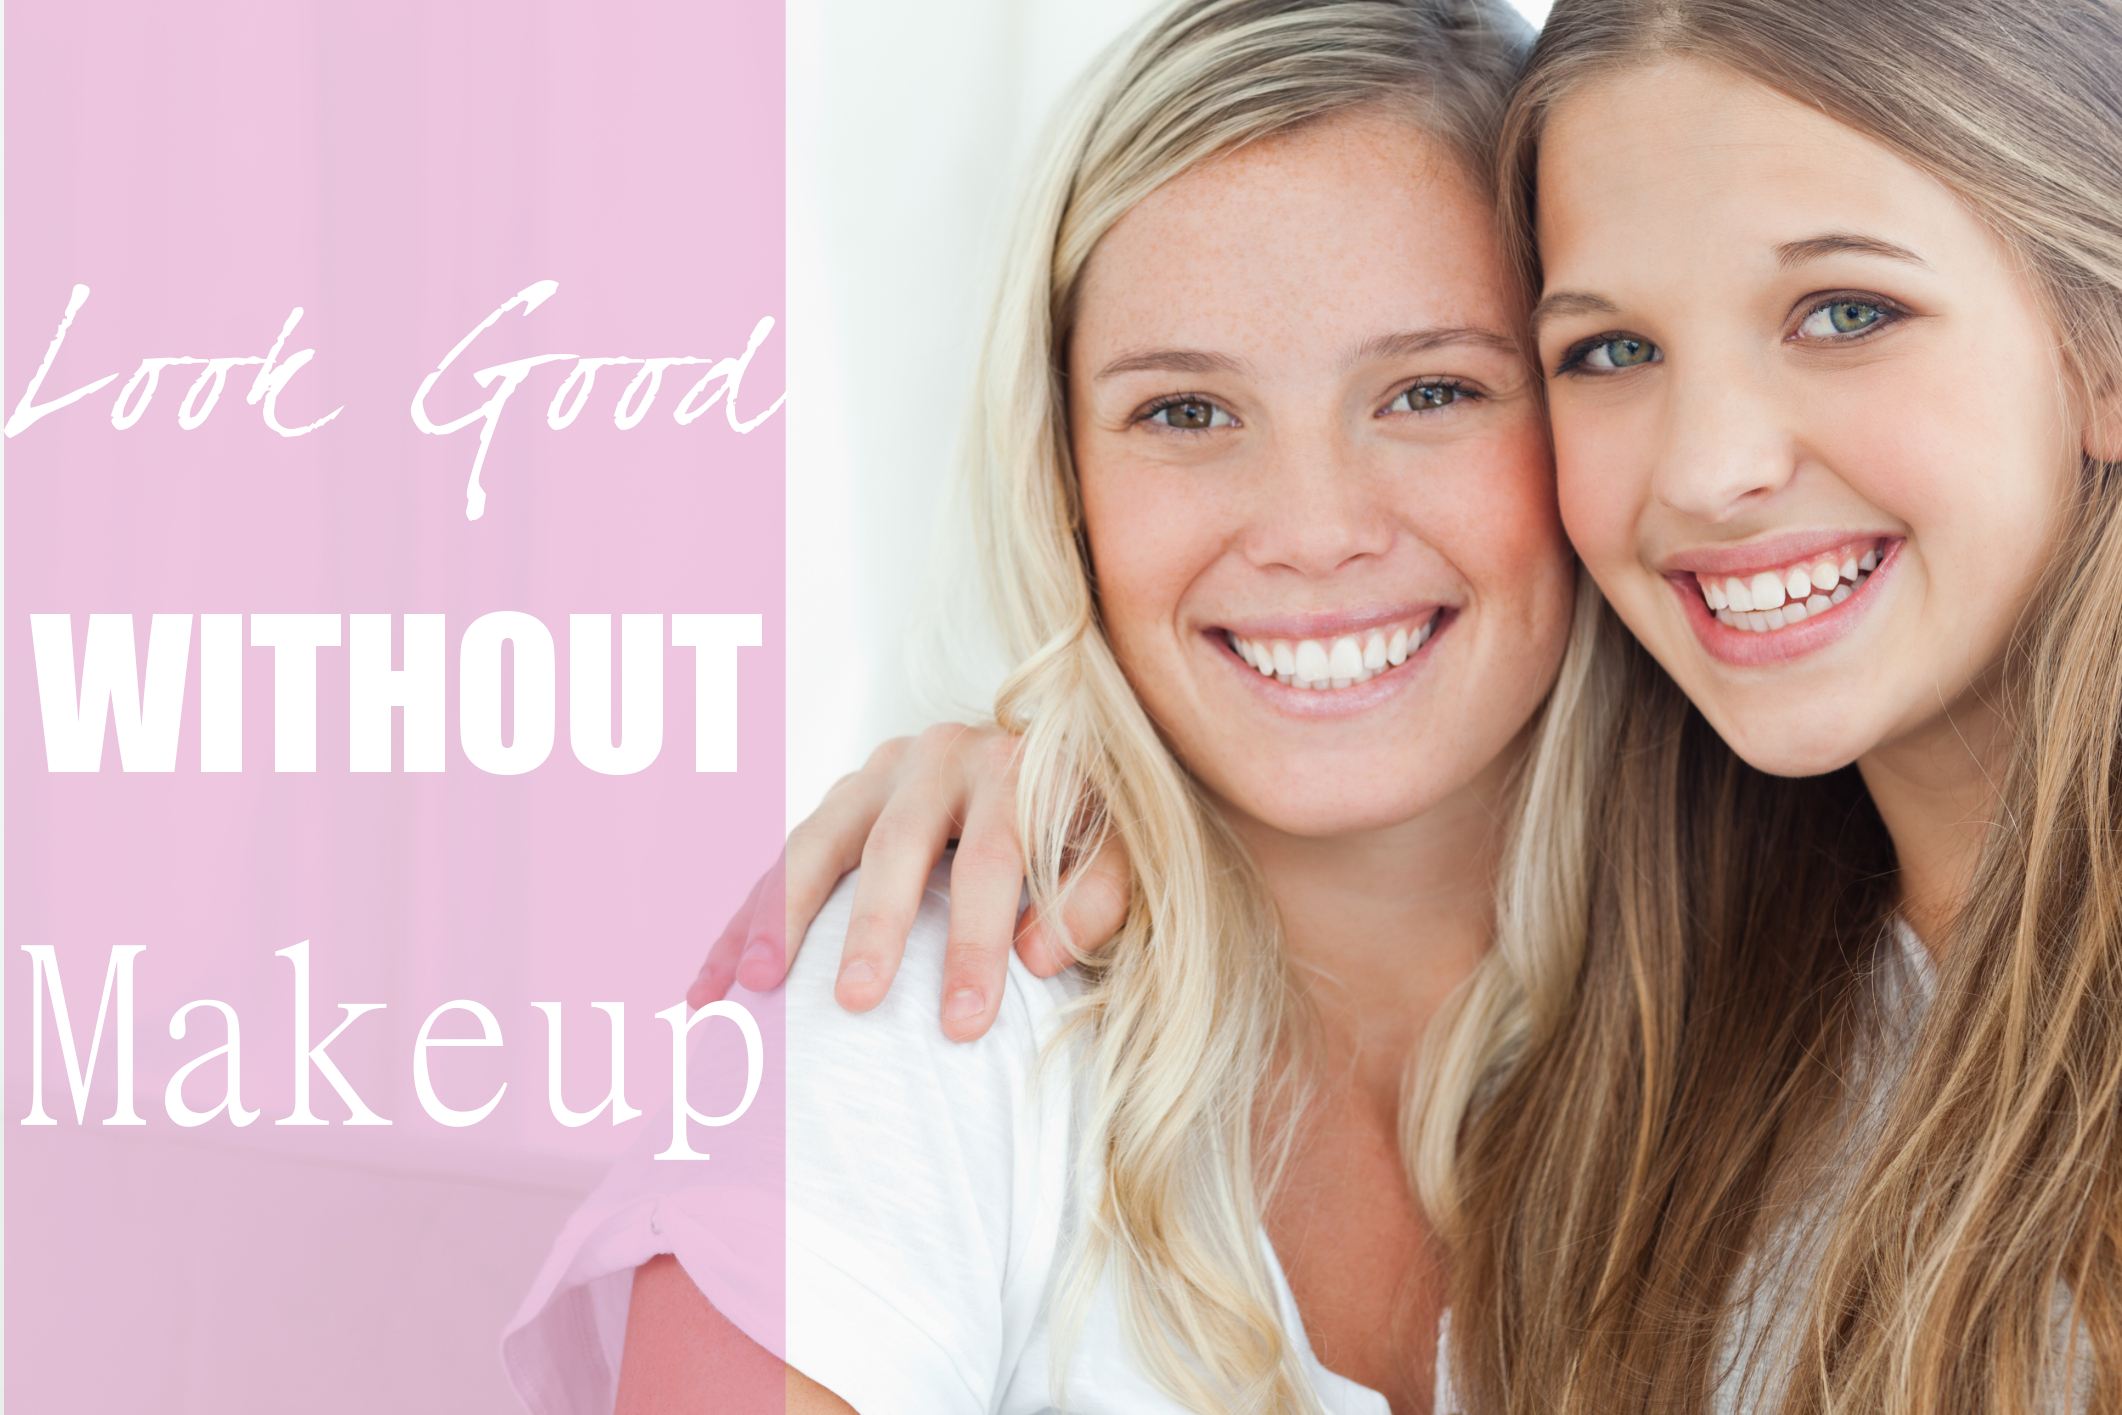 posted in makeup makeup tips published on 09 oct 2013